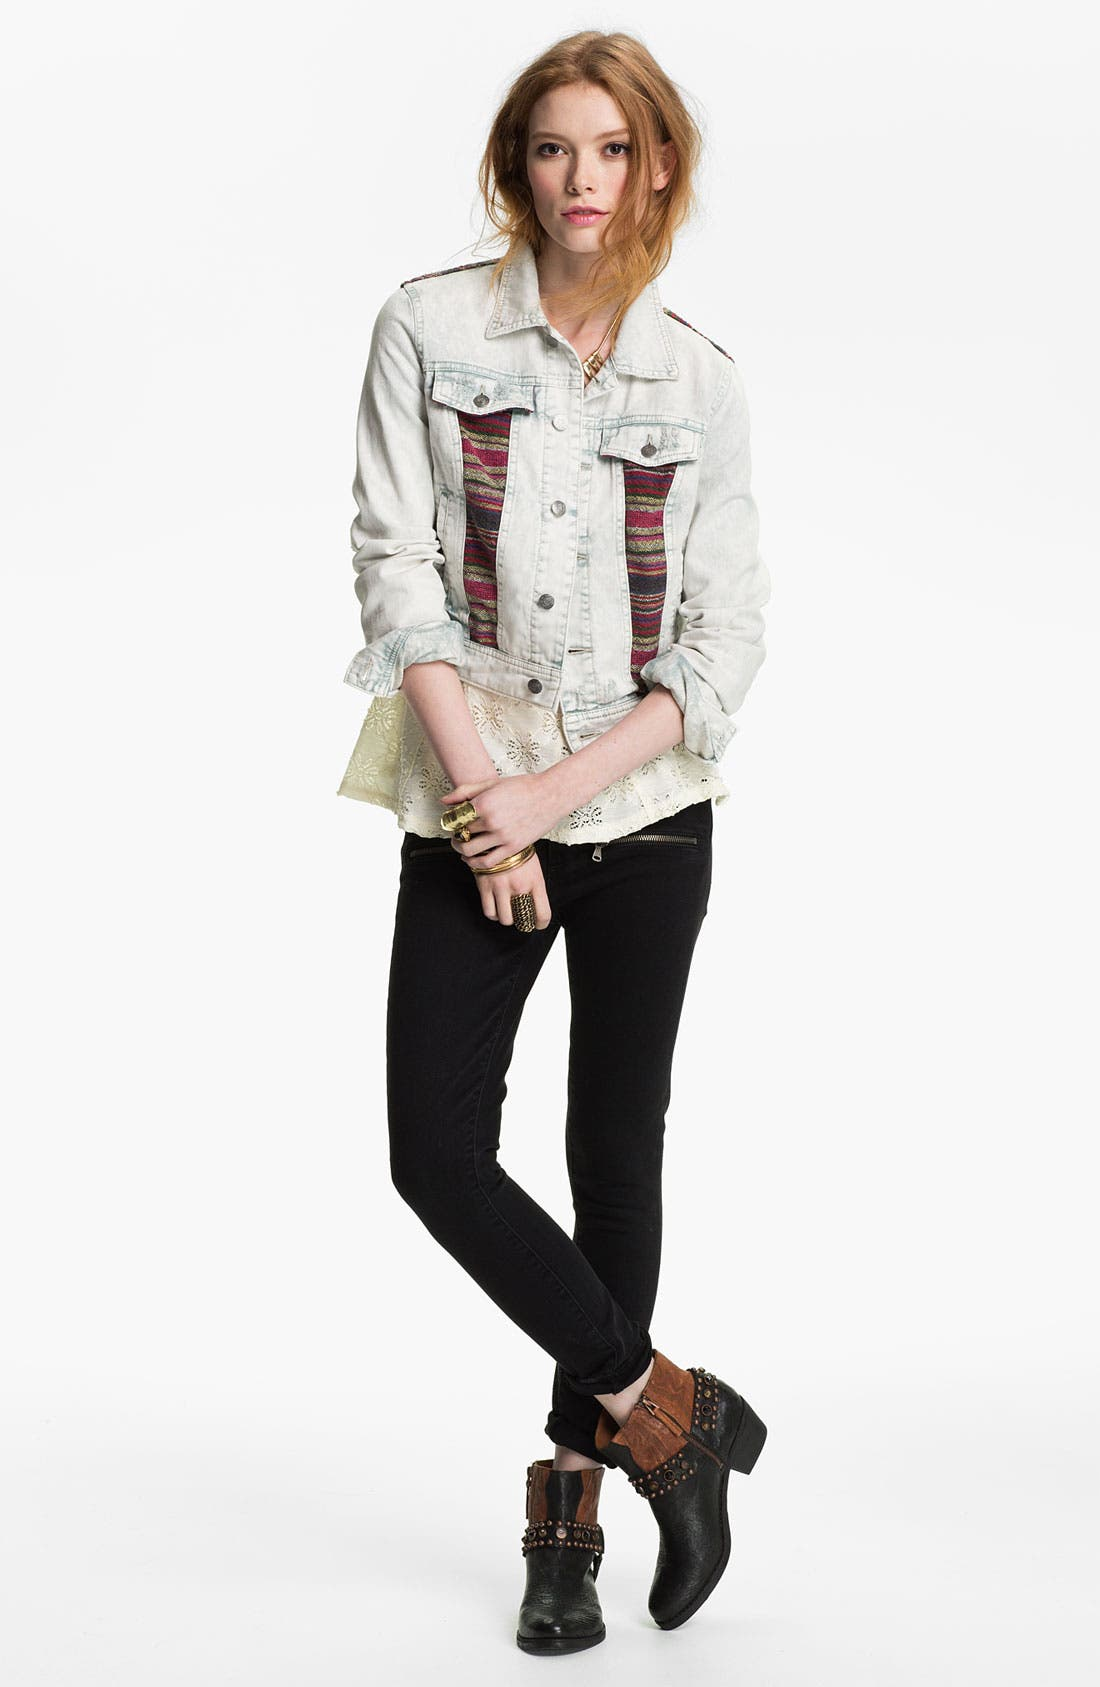 Paige Jeans, Free People Jacket & Top,                             Main thumbnail 1, color,                             118